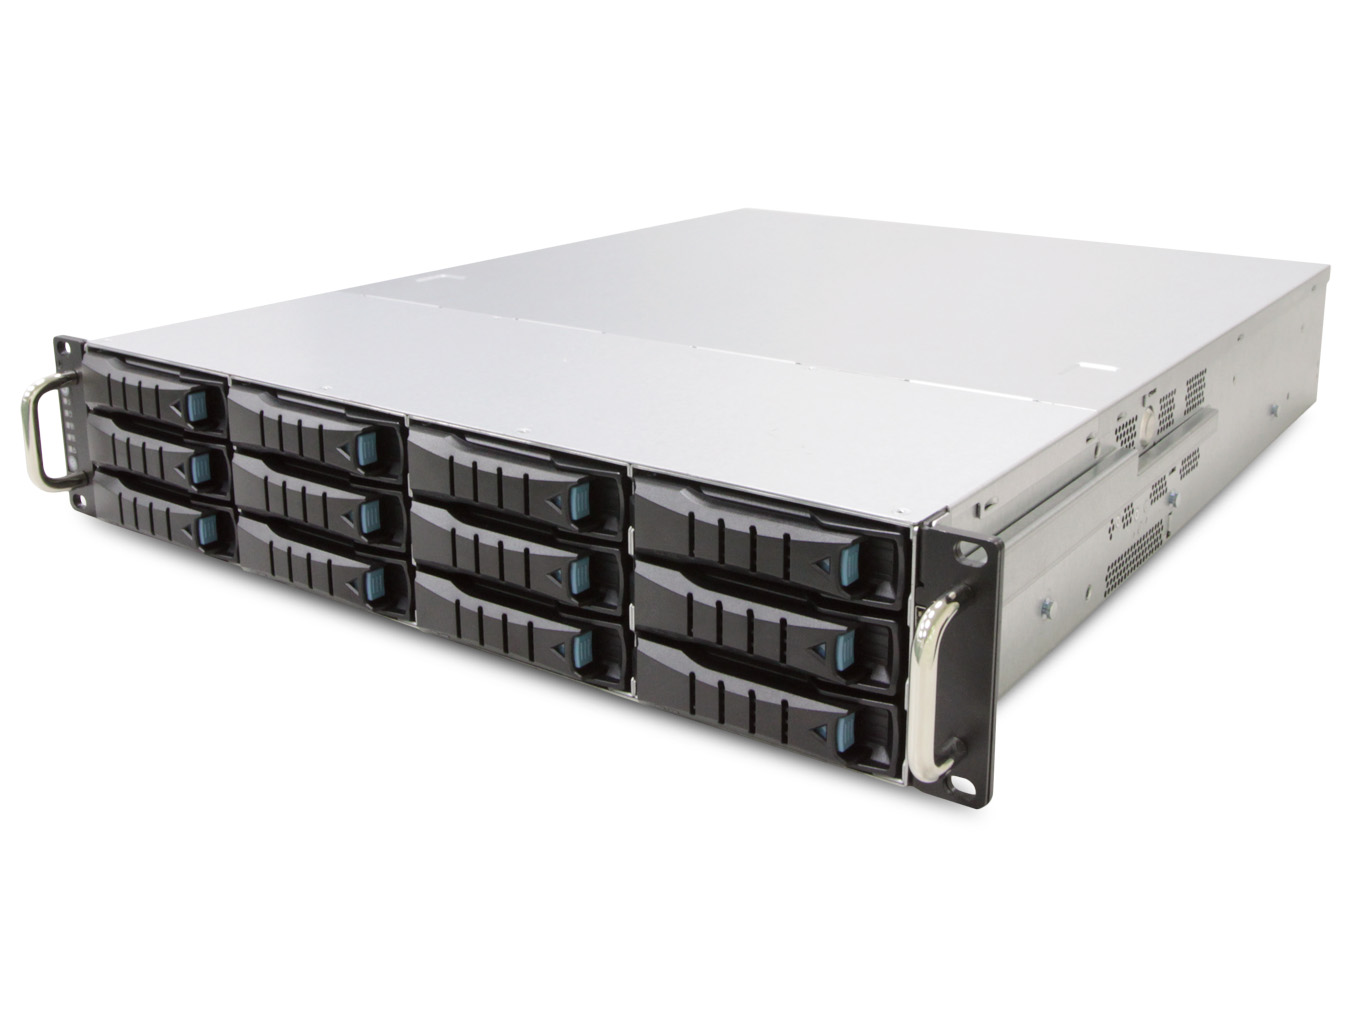 AIC SB202-LE XP1-S202LE01 2U 12-Bay Storage Server